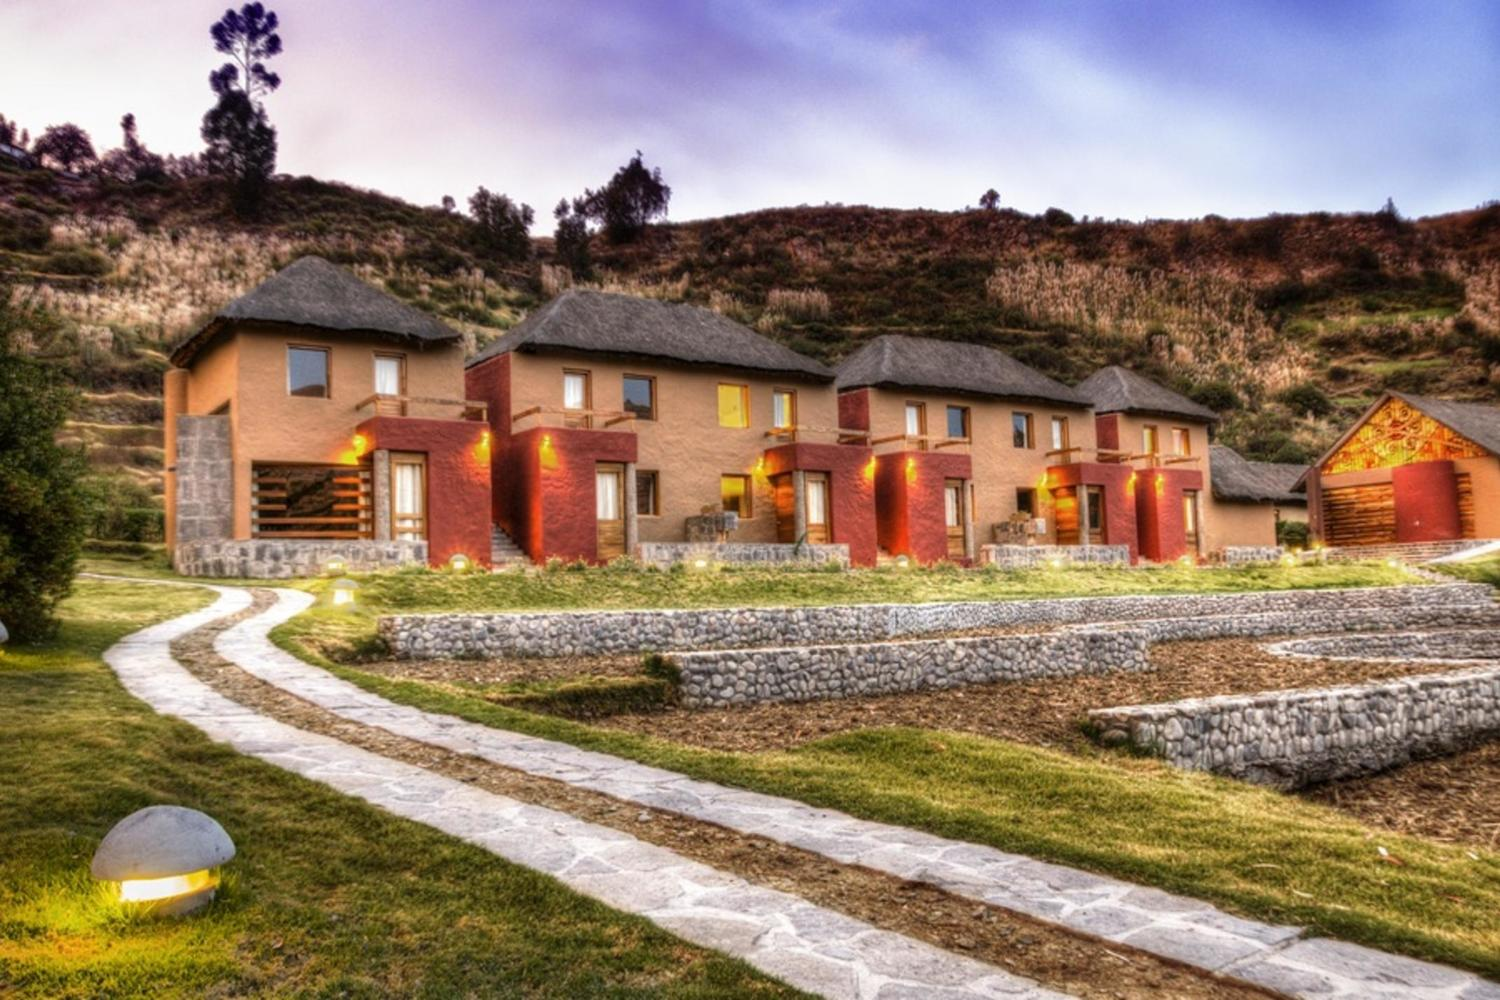 The welcoming Colca Lodge